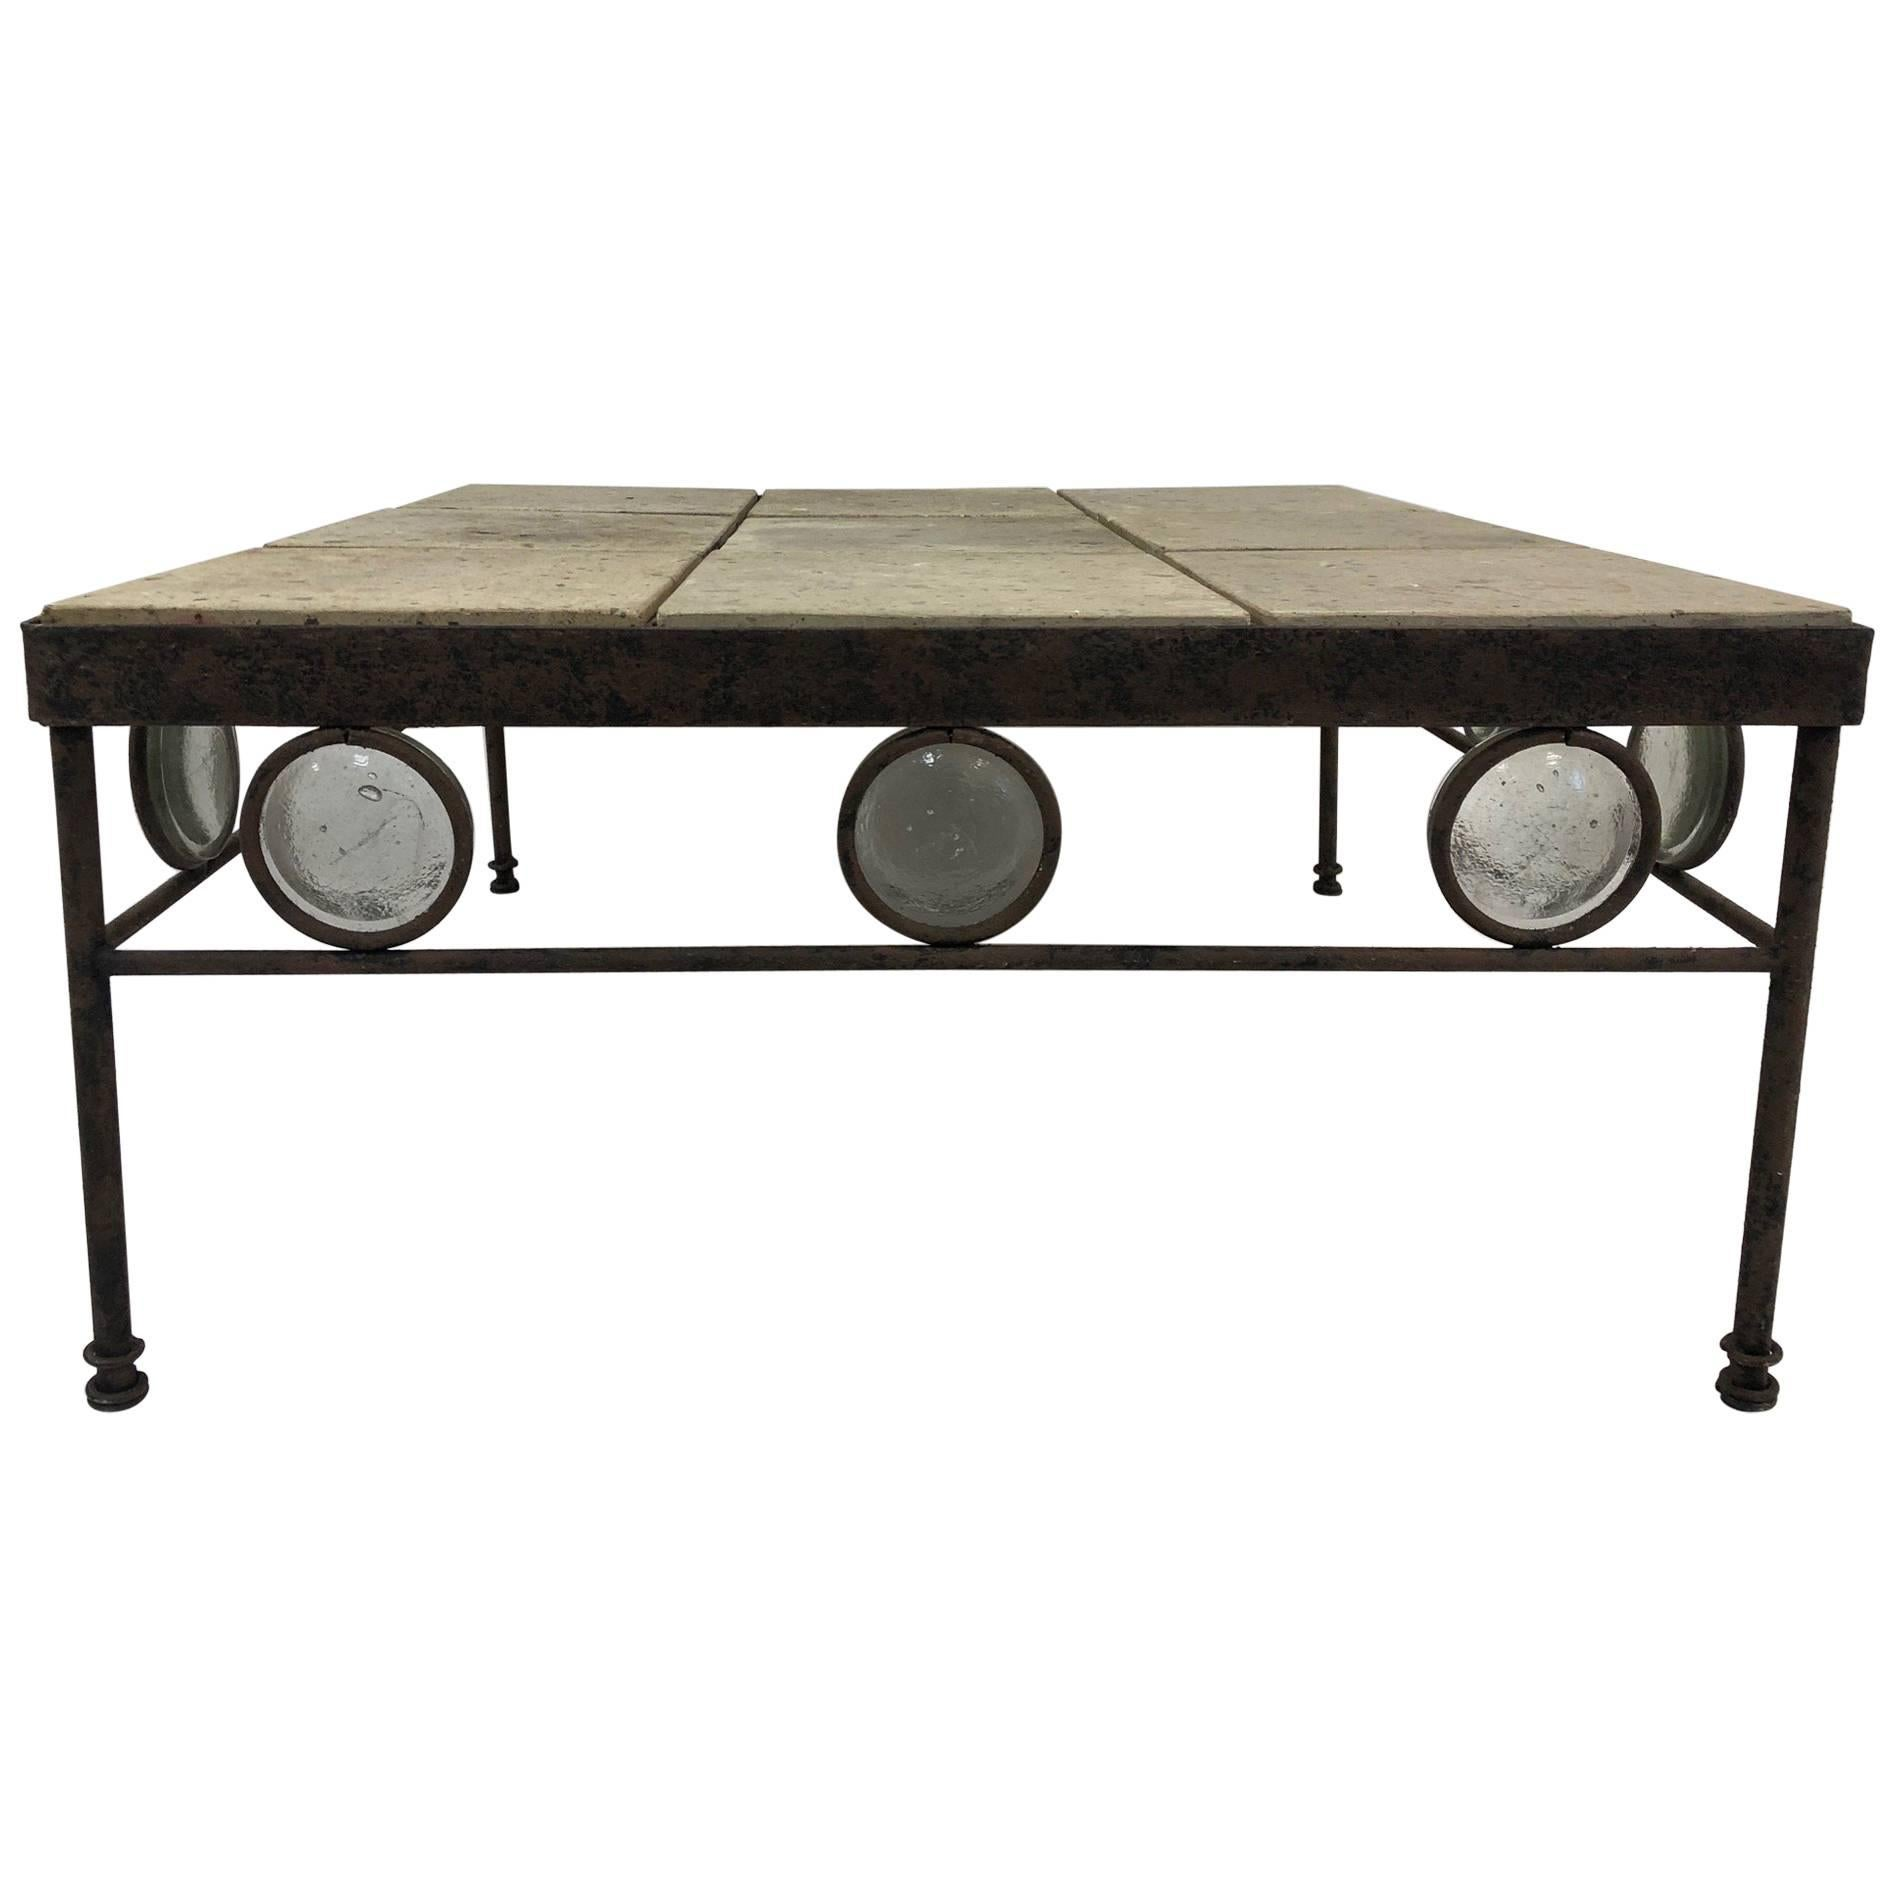 Antique, Italian Wrought Iron And Stone Top Coffee Table